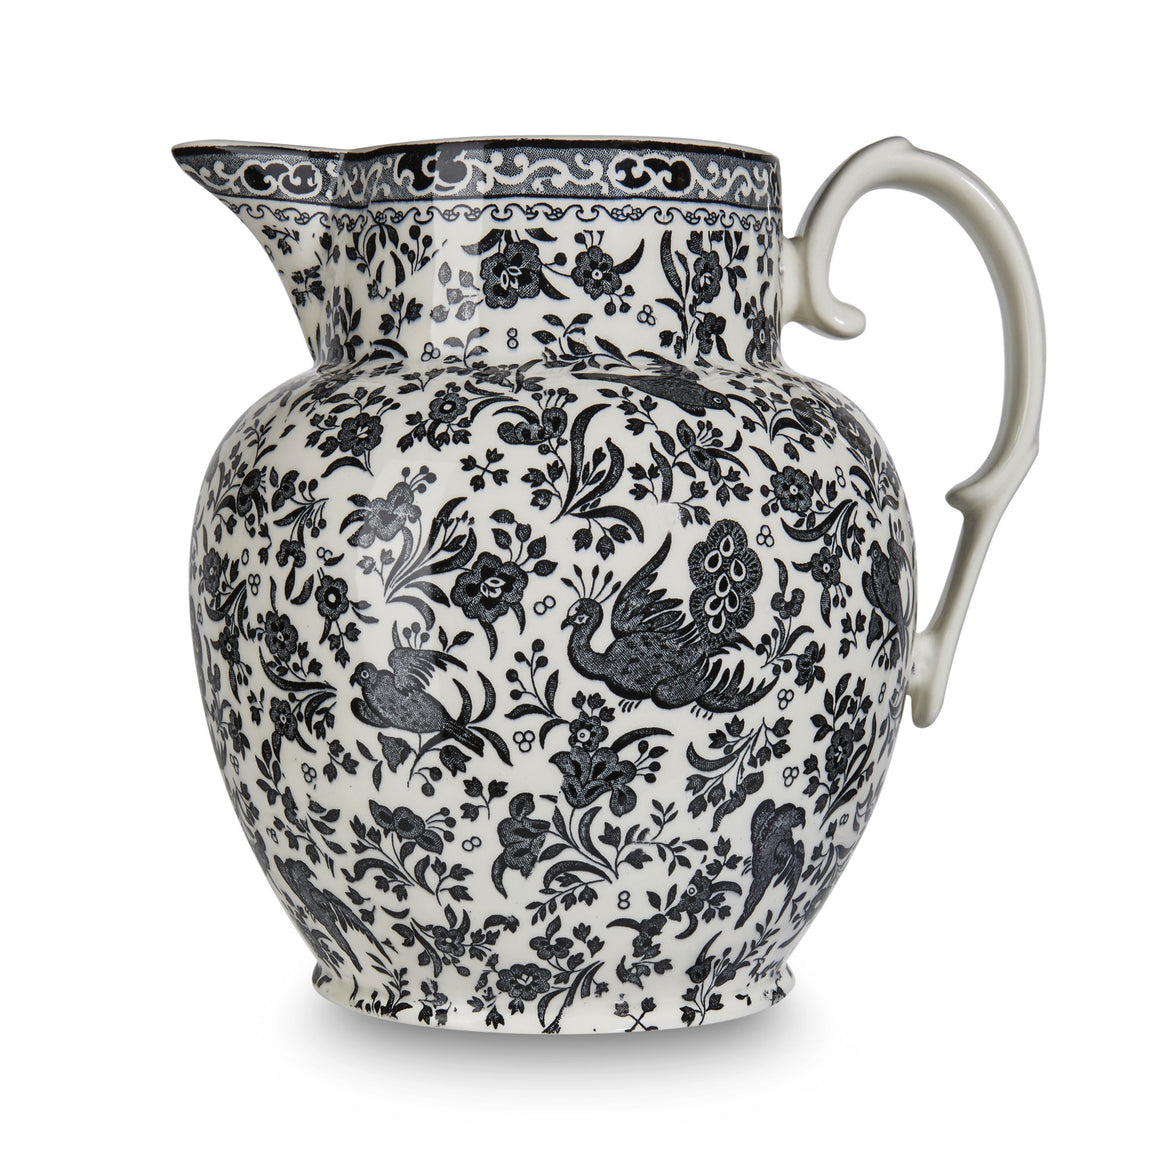 Burleigh Black Regal Peacock Etruscan Jug 2.2L